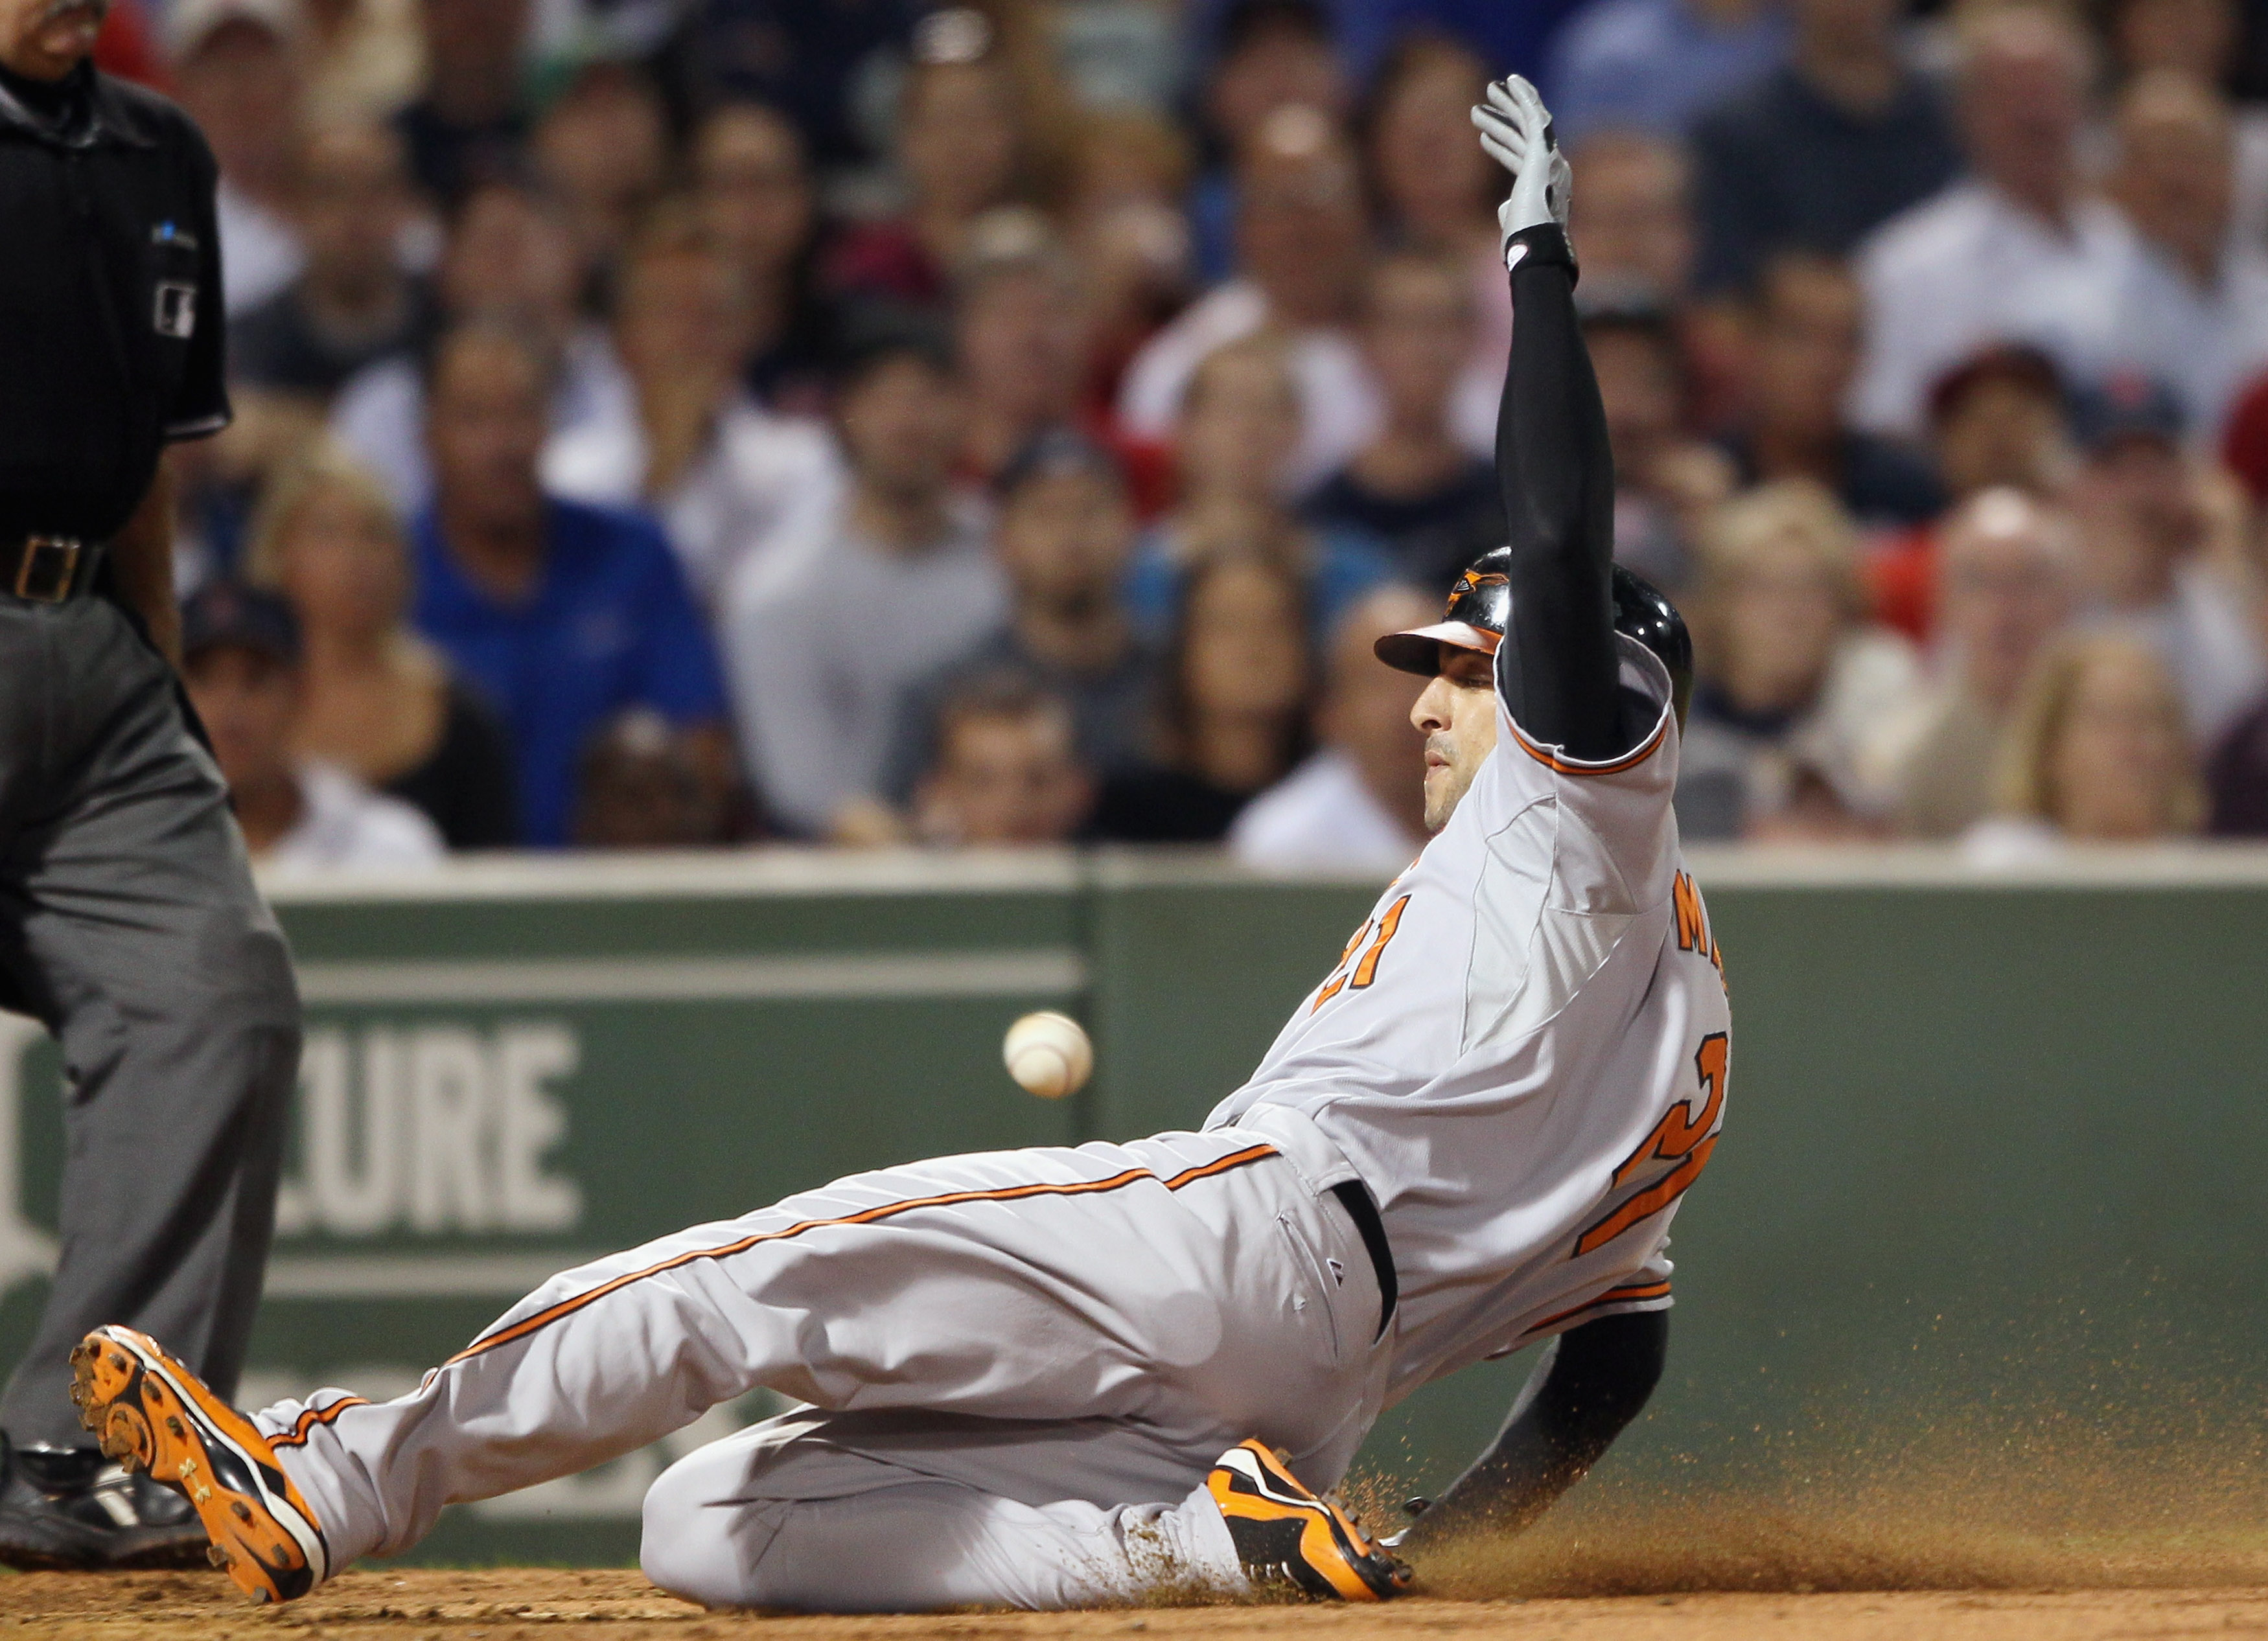 BOSTON - SEPTEMBER 22:  Nick Markakis #21 of the Baltimore Orioles beats the throw to score on a double from teammate Ty Wigginton in the fourth inning against the Boston Red Sox on September 22, 2010 at Fenway Park in Boston, Massachusetts.  (Photo by El